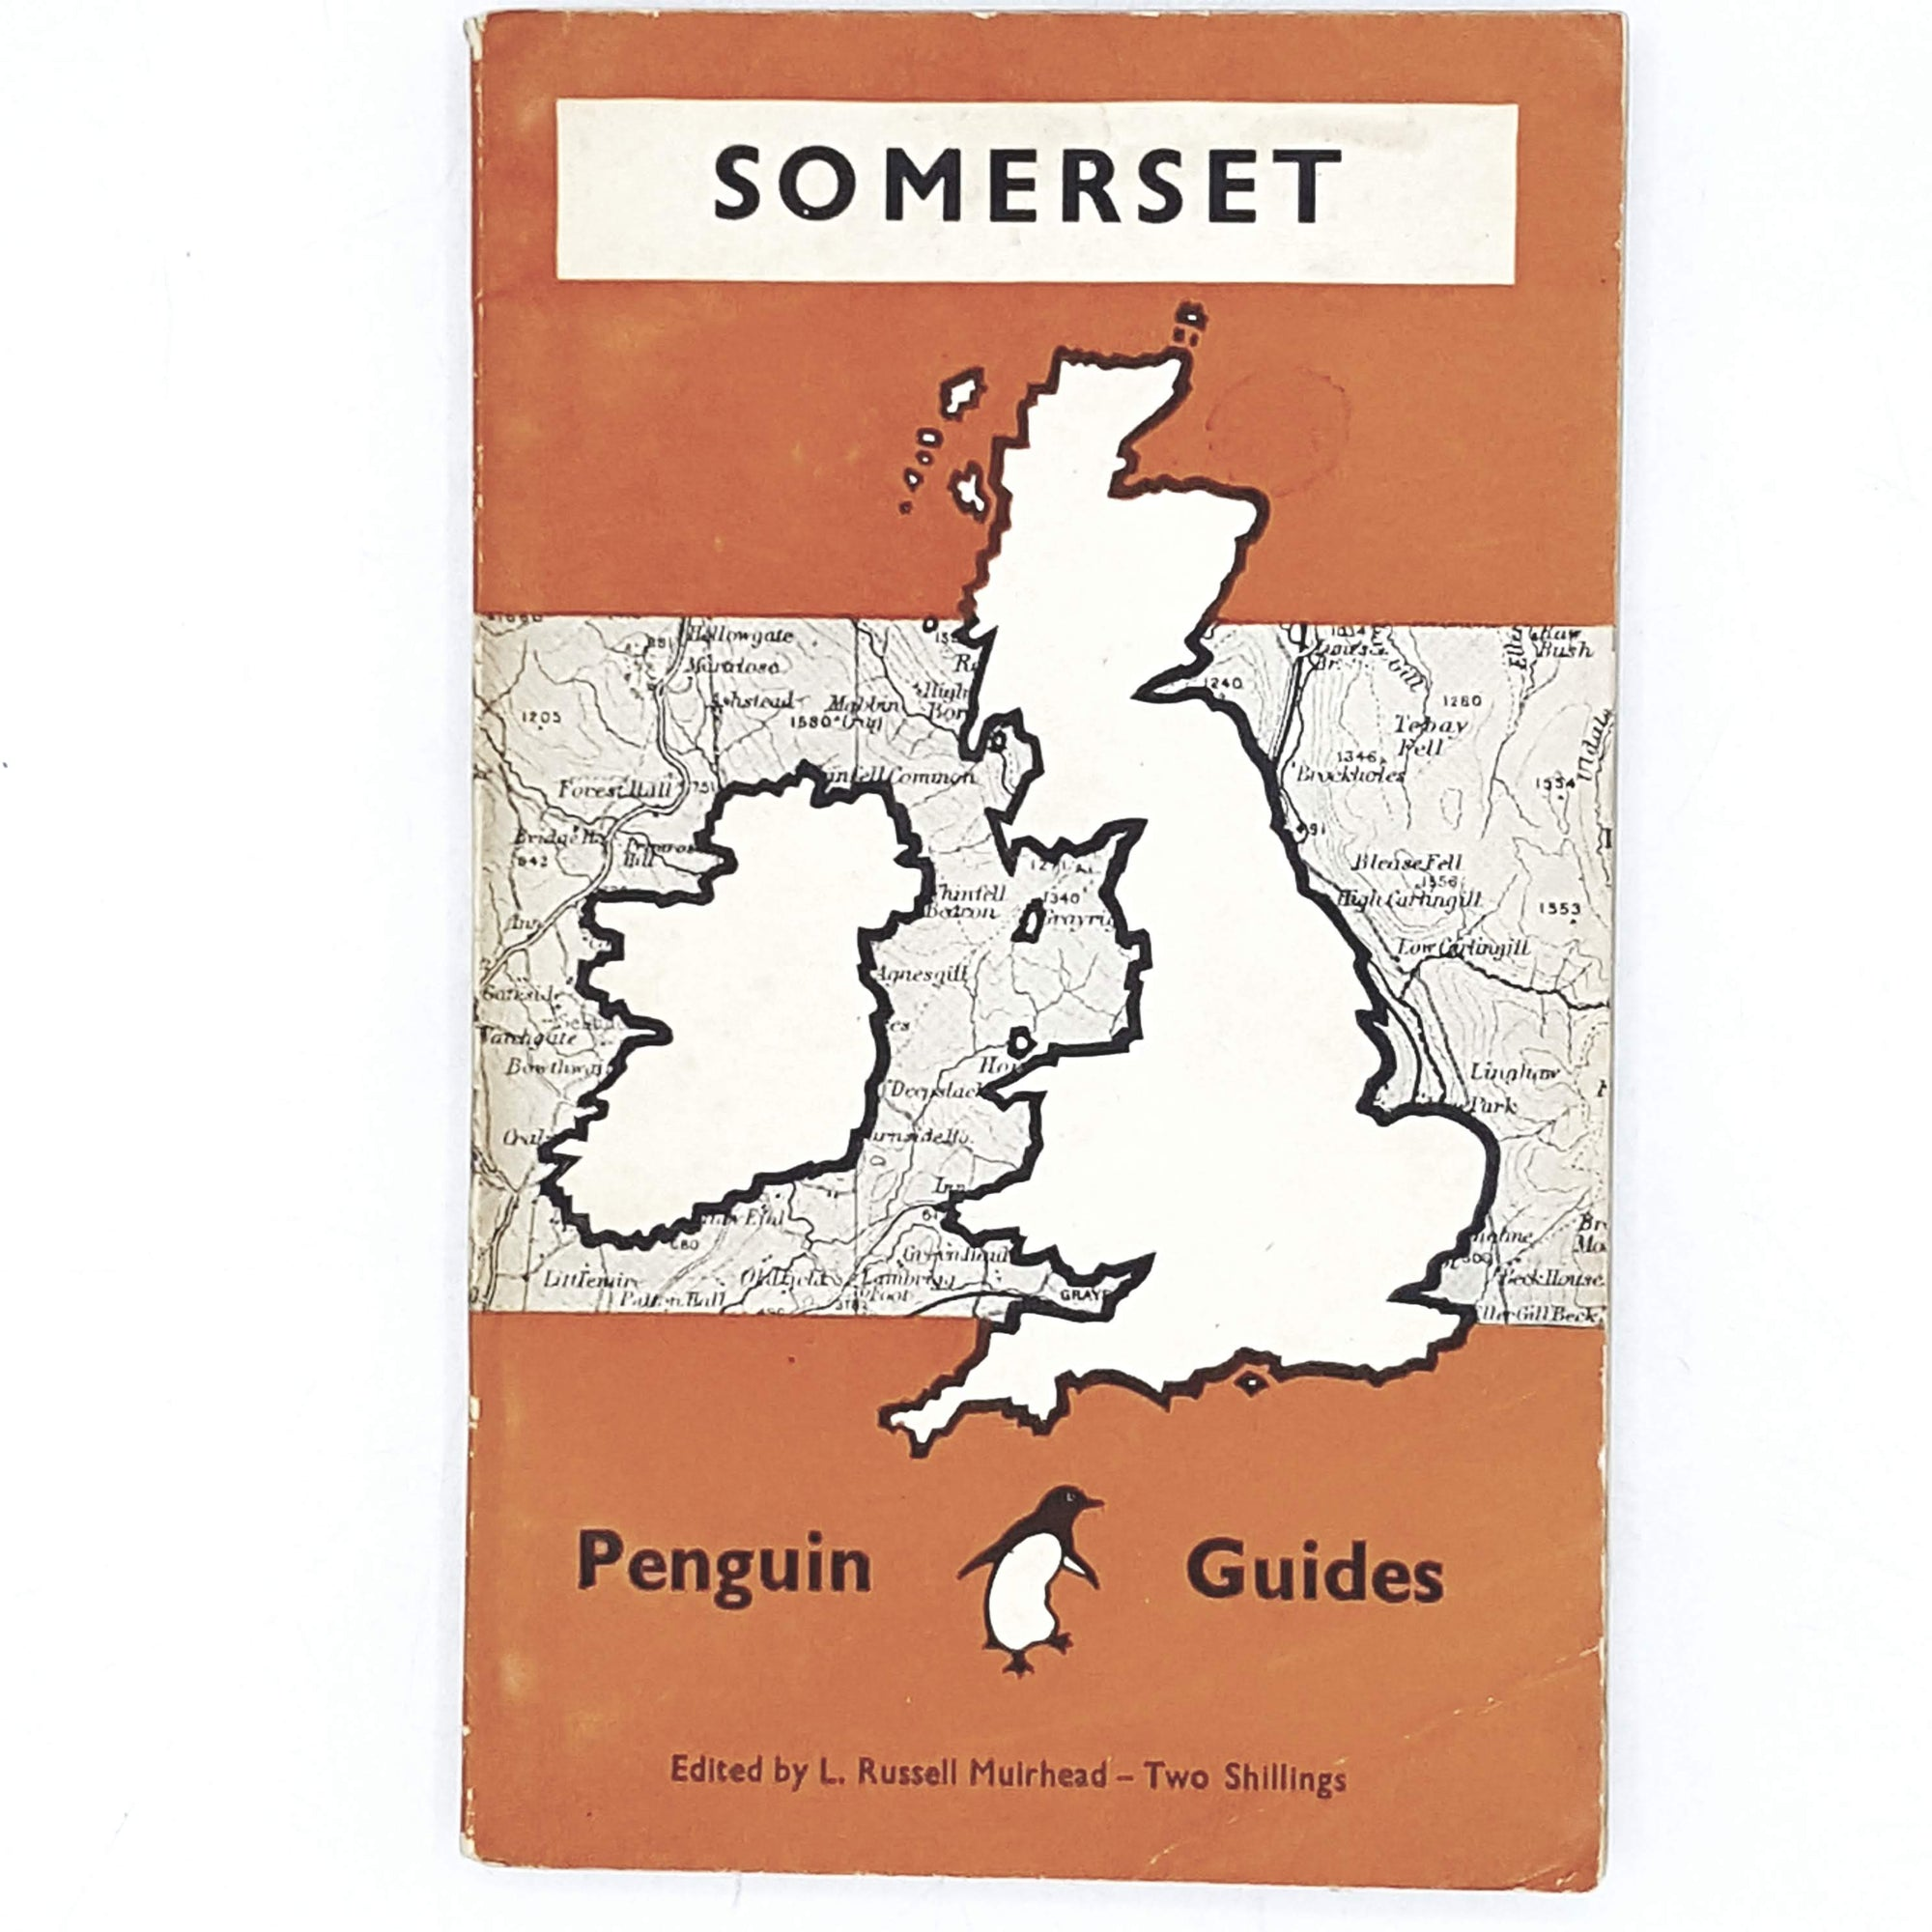 Vintage Illustrated Penguin Guide: Somerset 1949